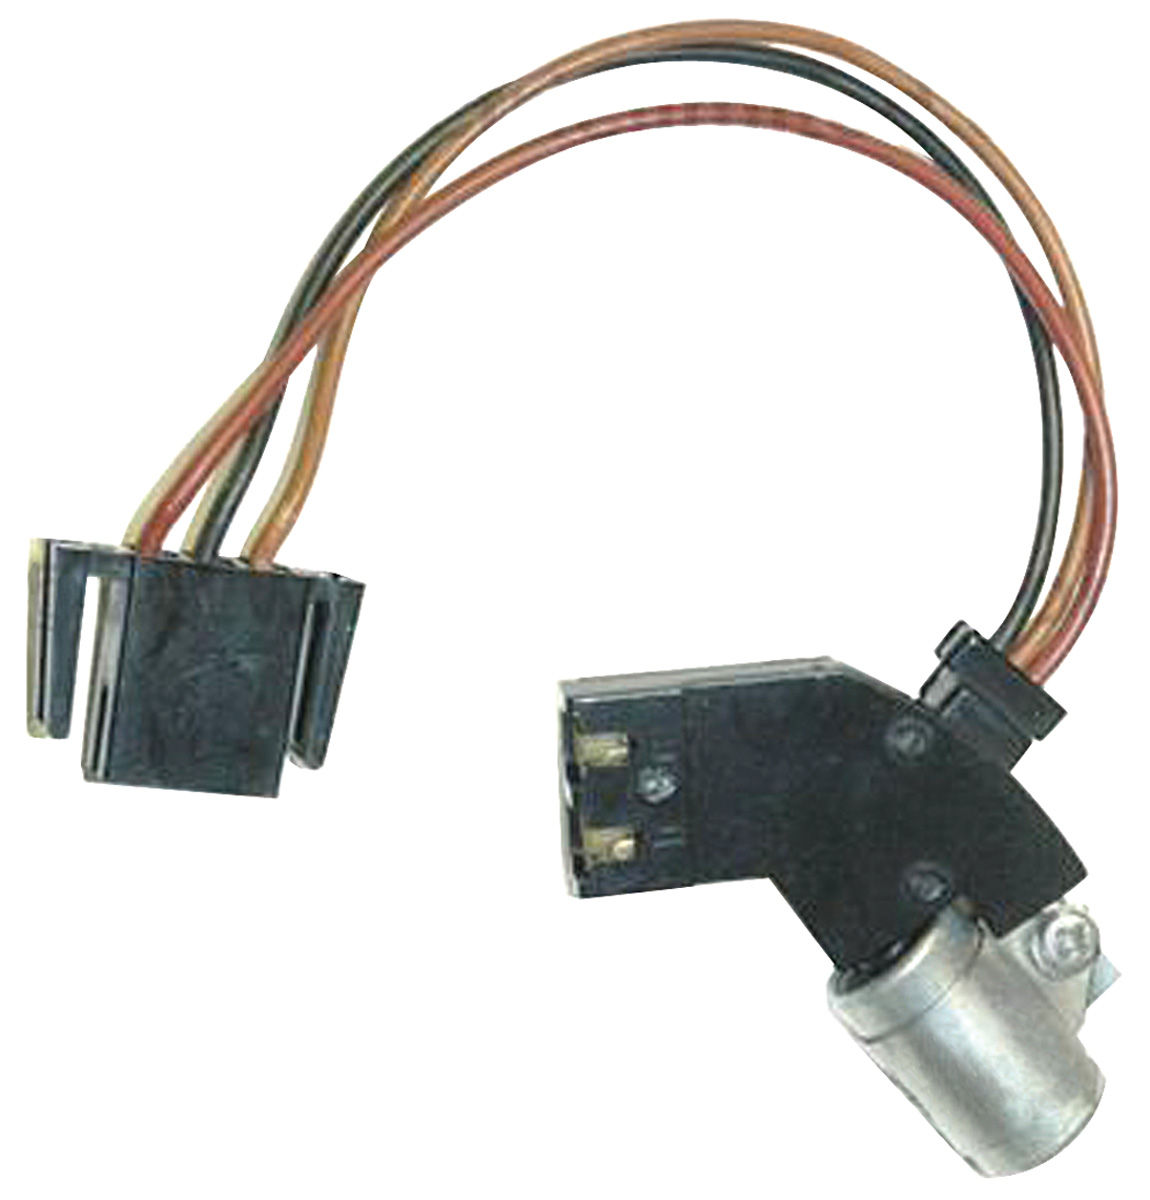 lectric limited 1978 88 el camino ignition module to coil harness rh opgi com ignition control module wire harness GM Ignition Coil Wiring Harness